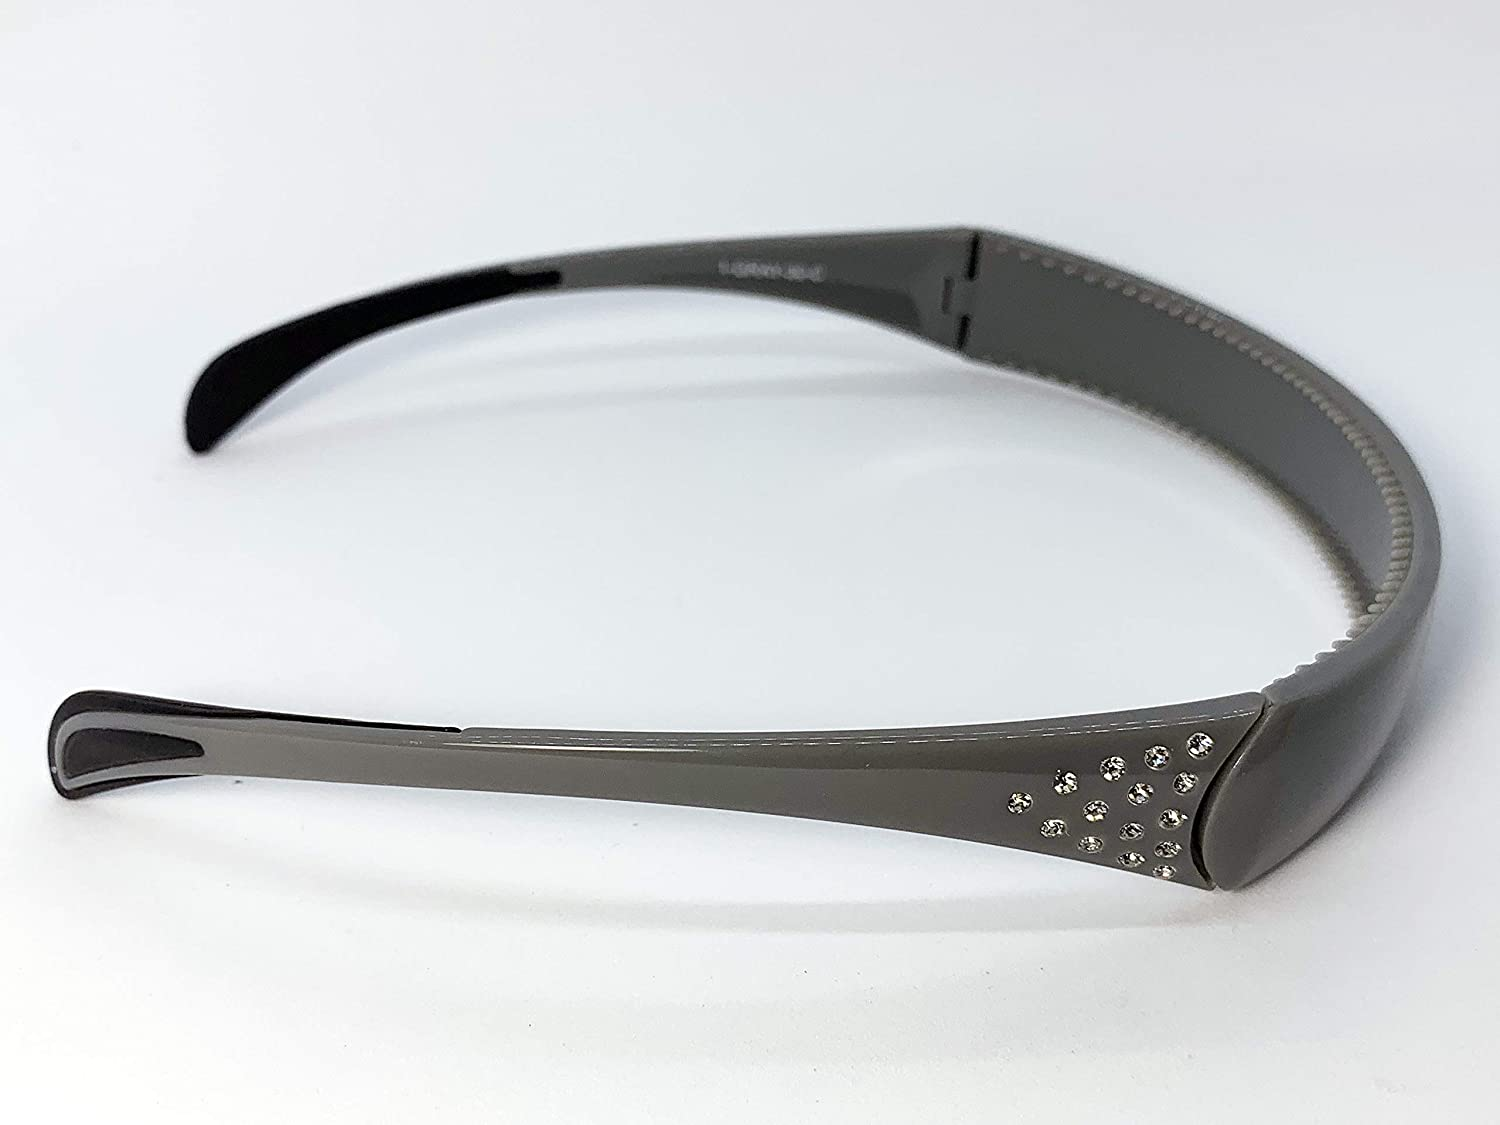 Hinged Headband fits like sunglasses providing lift and style without giving you a headache - by SqHair Band (Gray-Crystals)